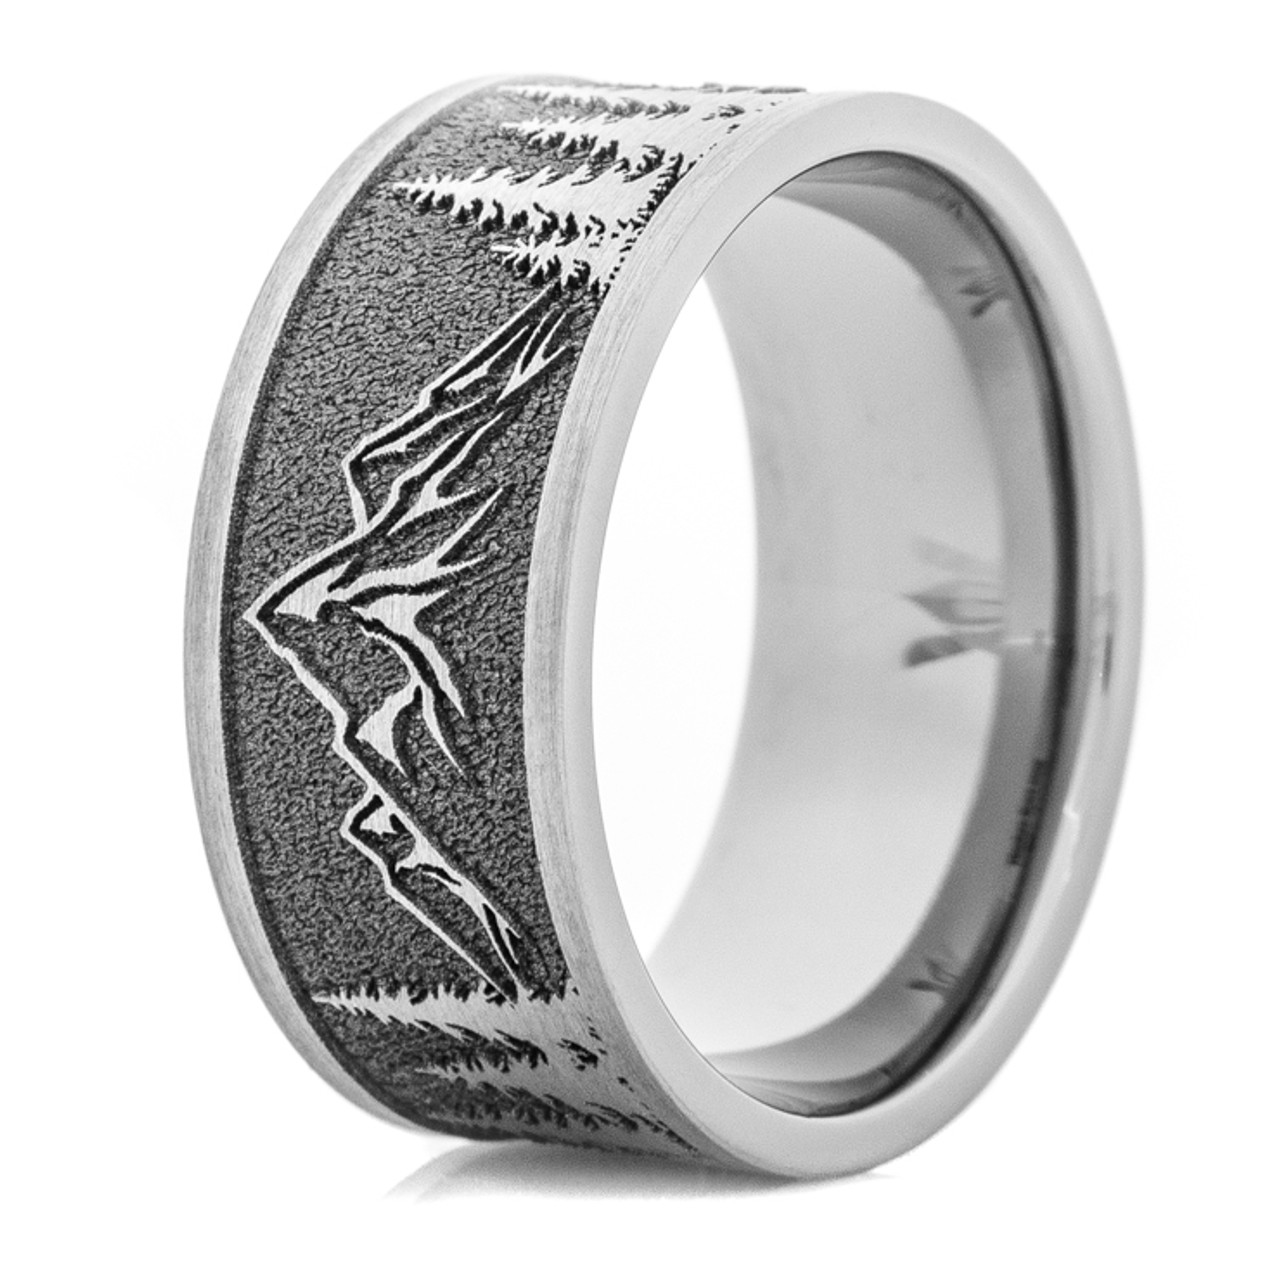 mens ring cz tir bling inlay jewelry with resin band wedding titanium bands fj linked